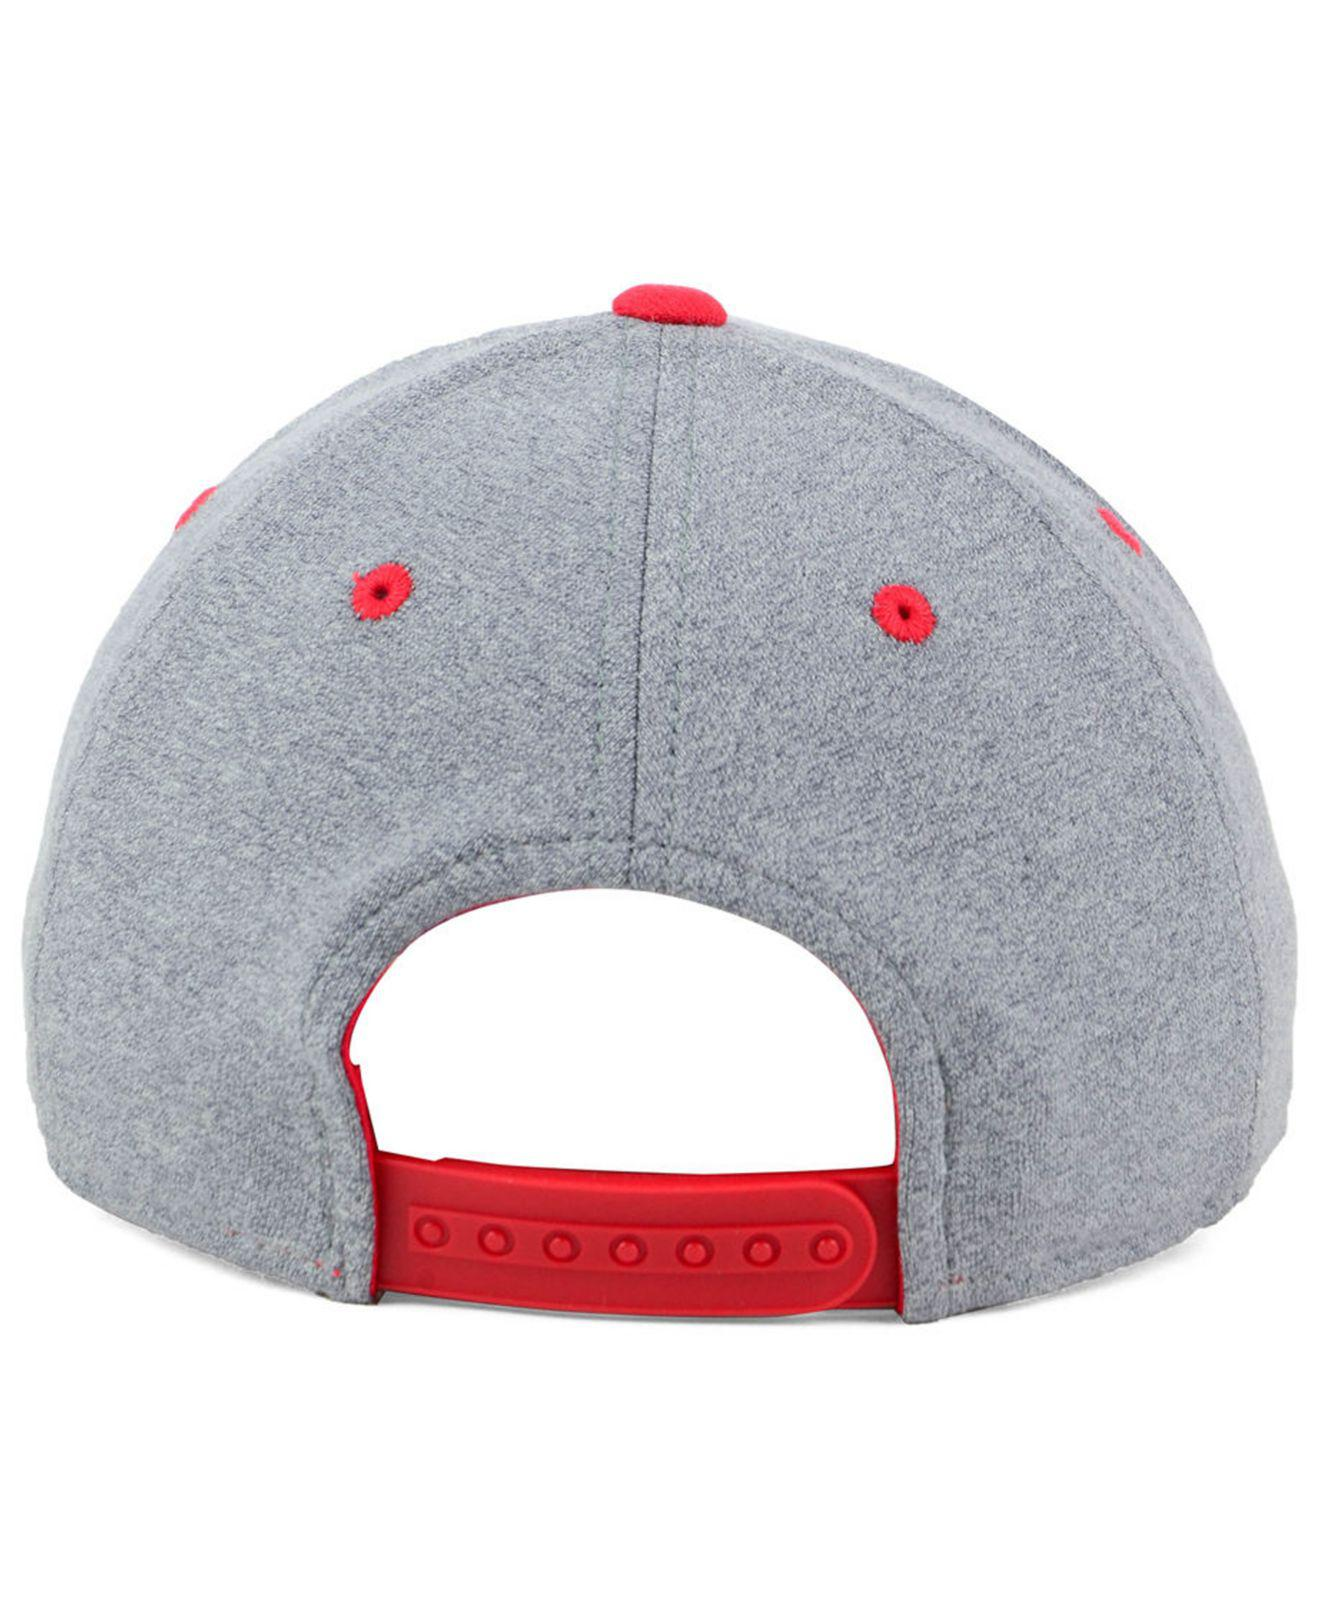 aa336fdf1f15e ... cheapest adidas red chicago fire structure adjustable cap for men lyst.  view fullscreen 6533a c6968